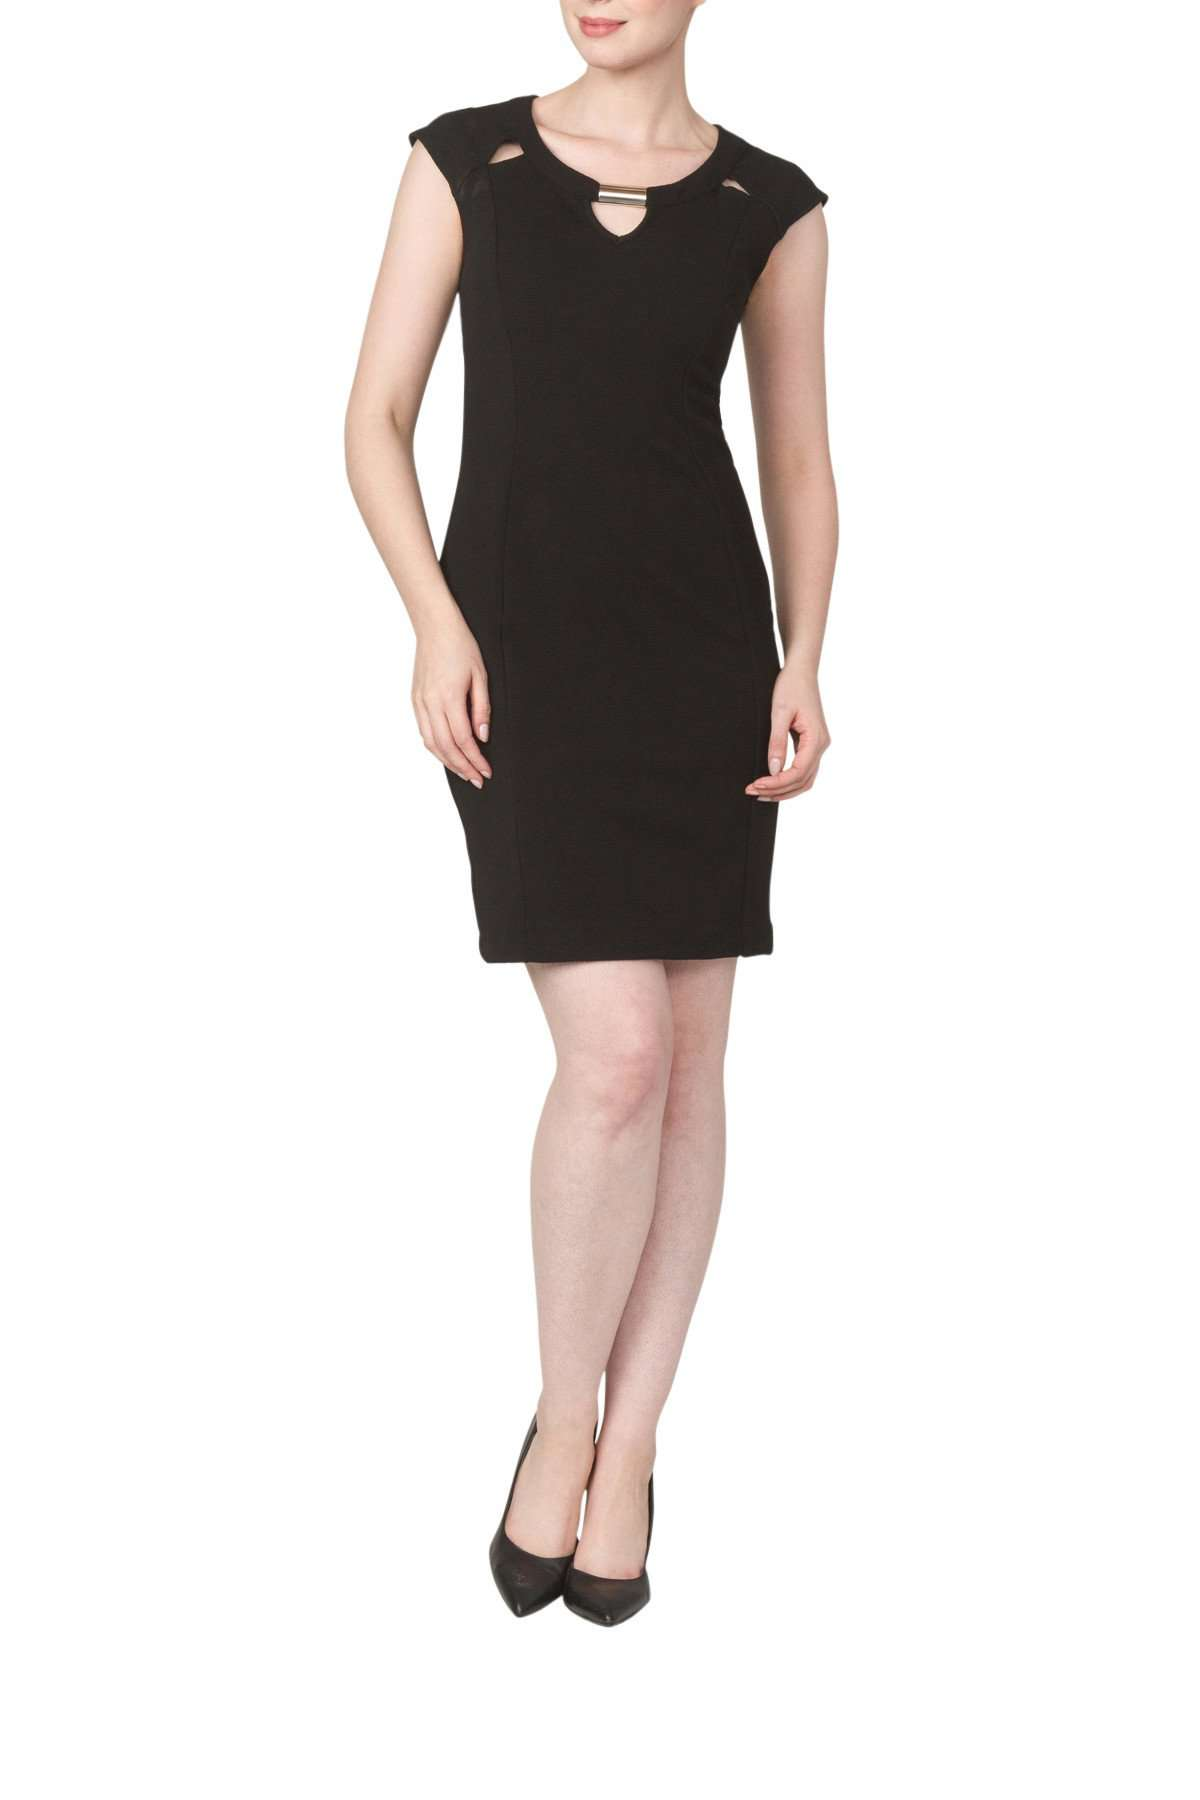 Dress in Black Quality Textured Stretch Knit Fabric Super Flattering Fit for all Sizes-Great for work and then Day to Night - Yvonne Marie